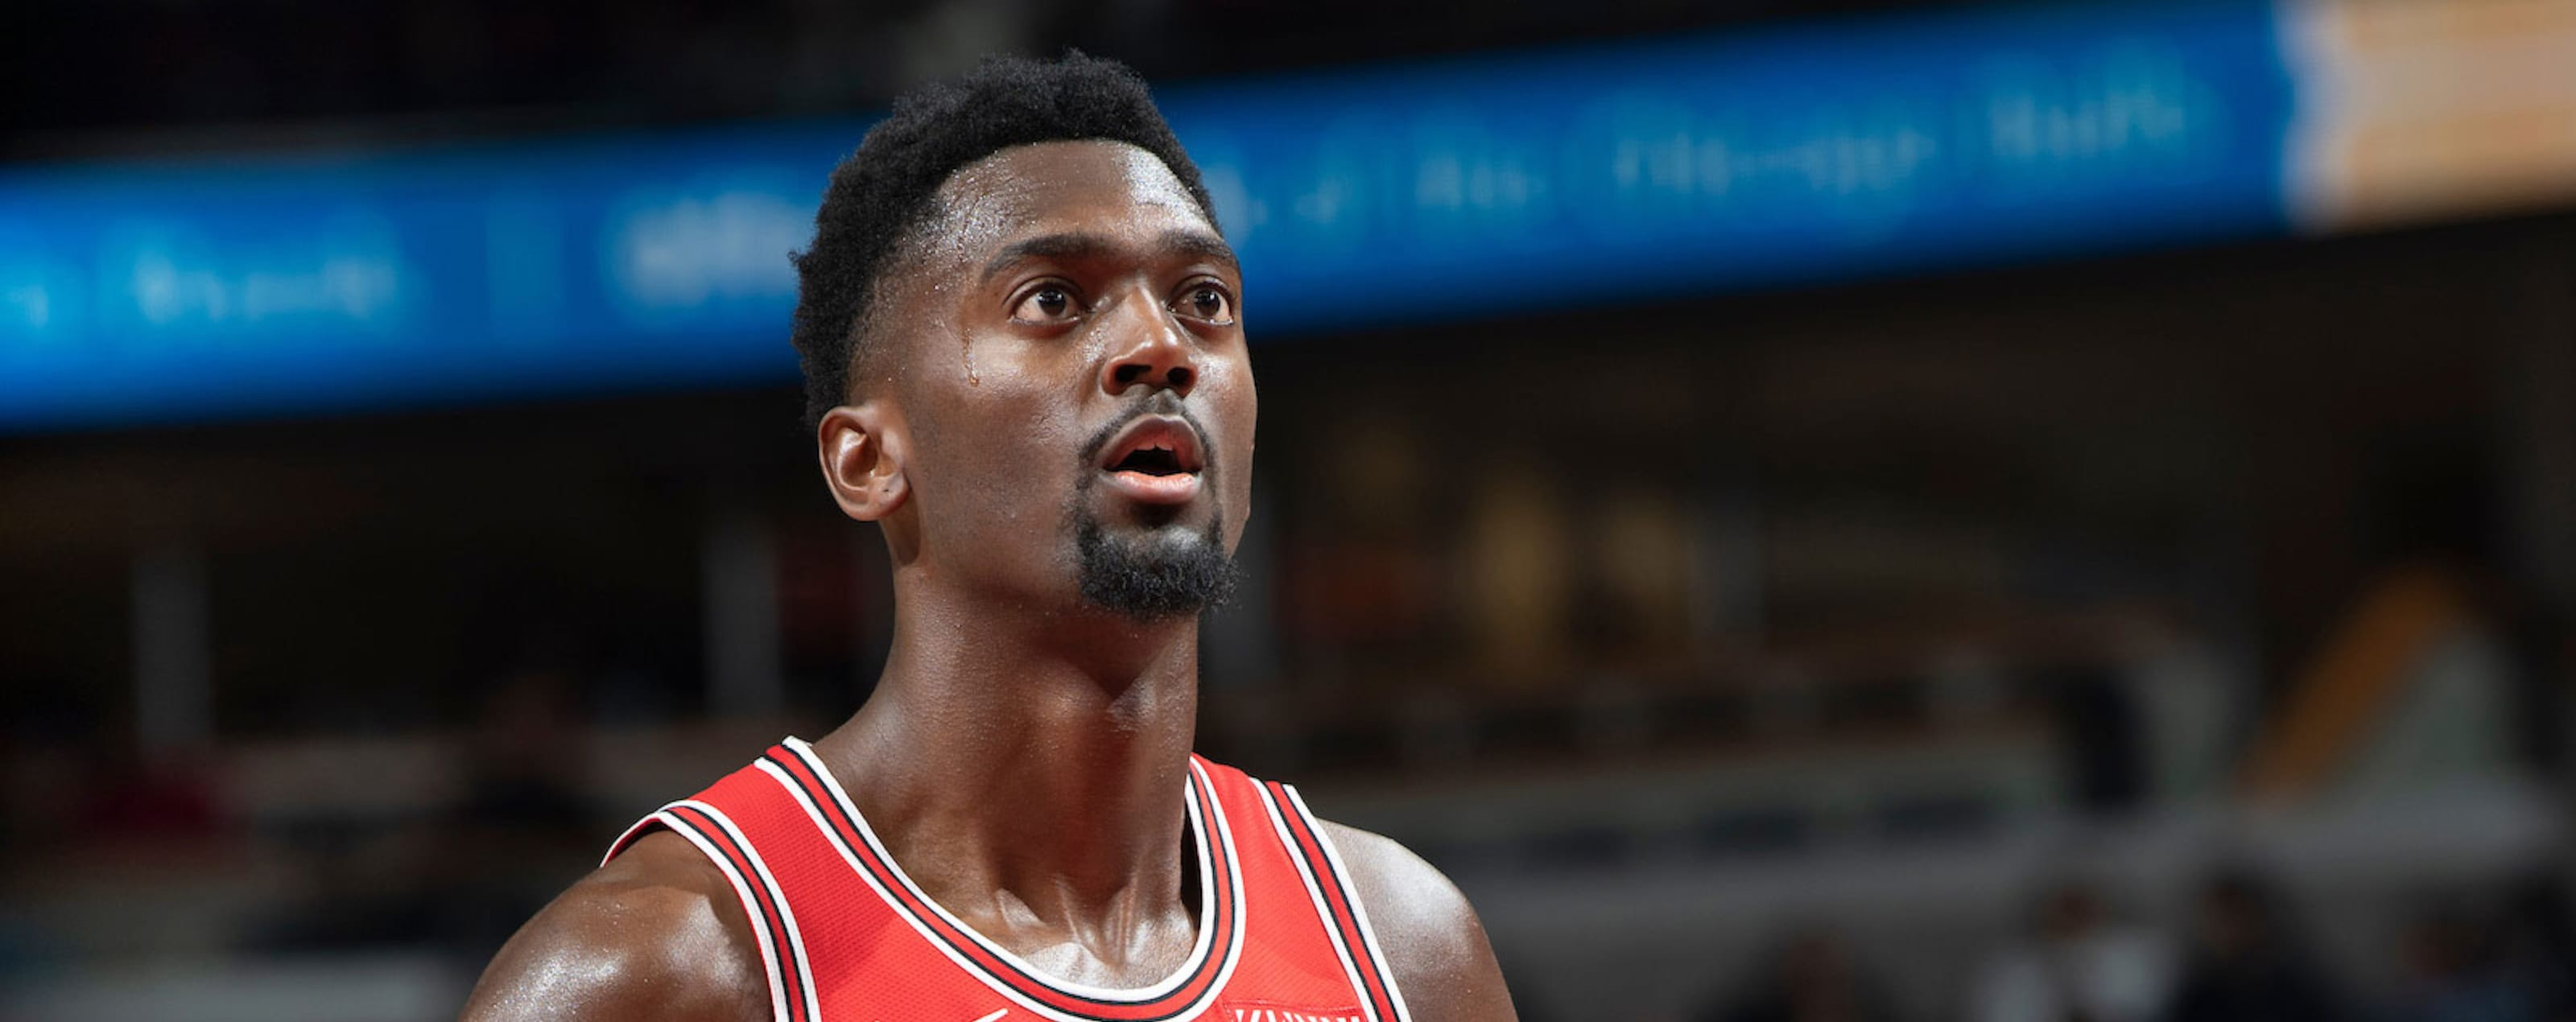 Bobby Portis prepares to shoot a free throw